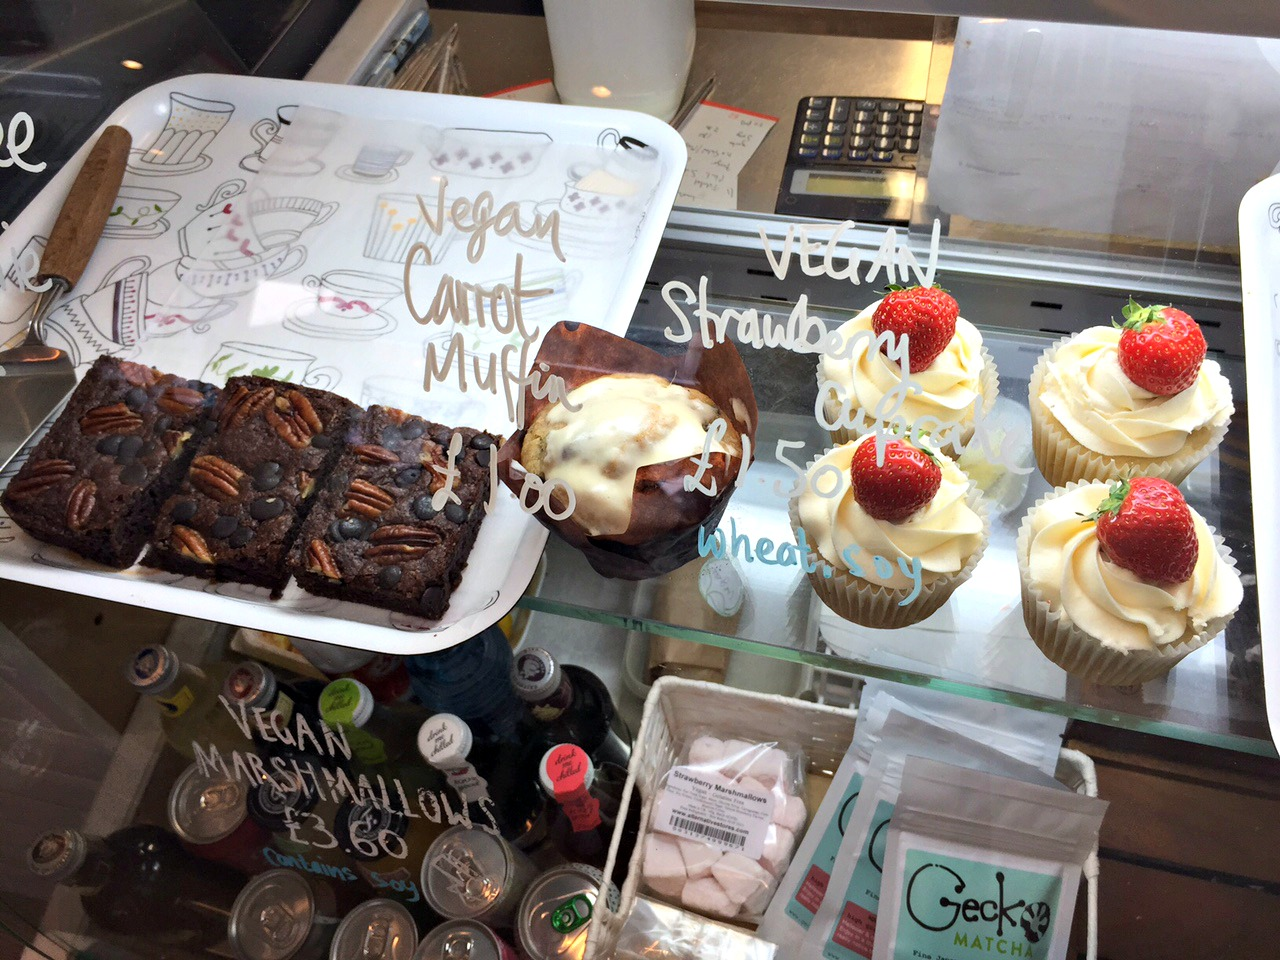 Vegan cakes at Good Apple Cafe in Sunderland